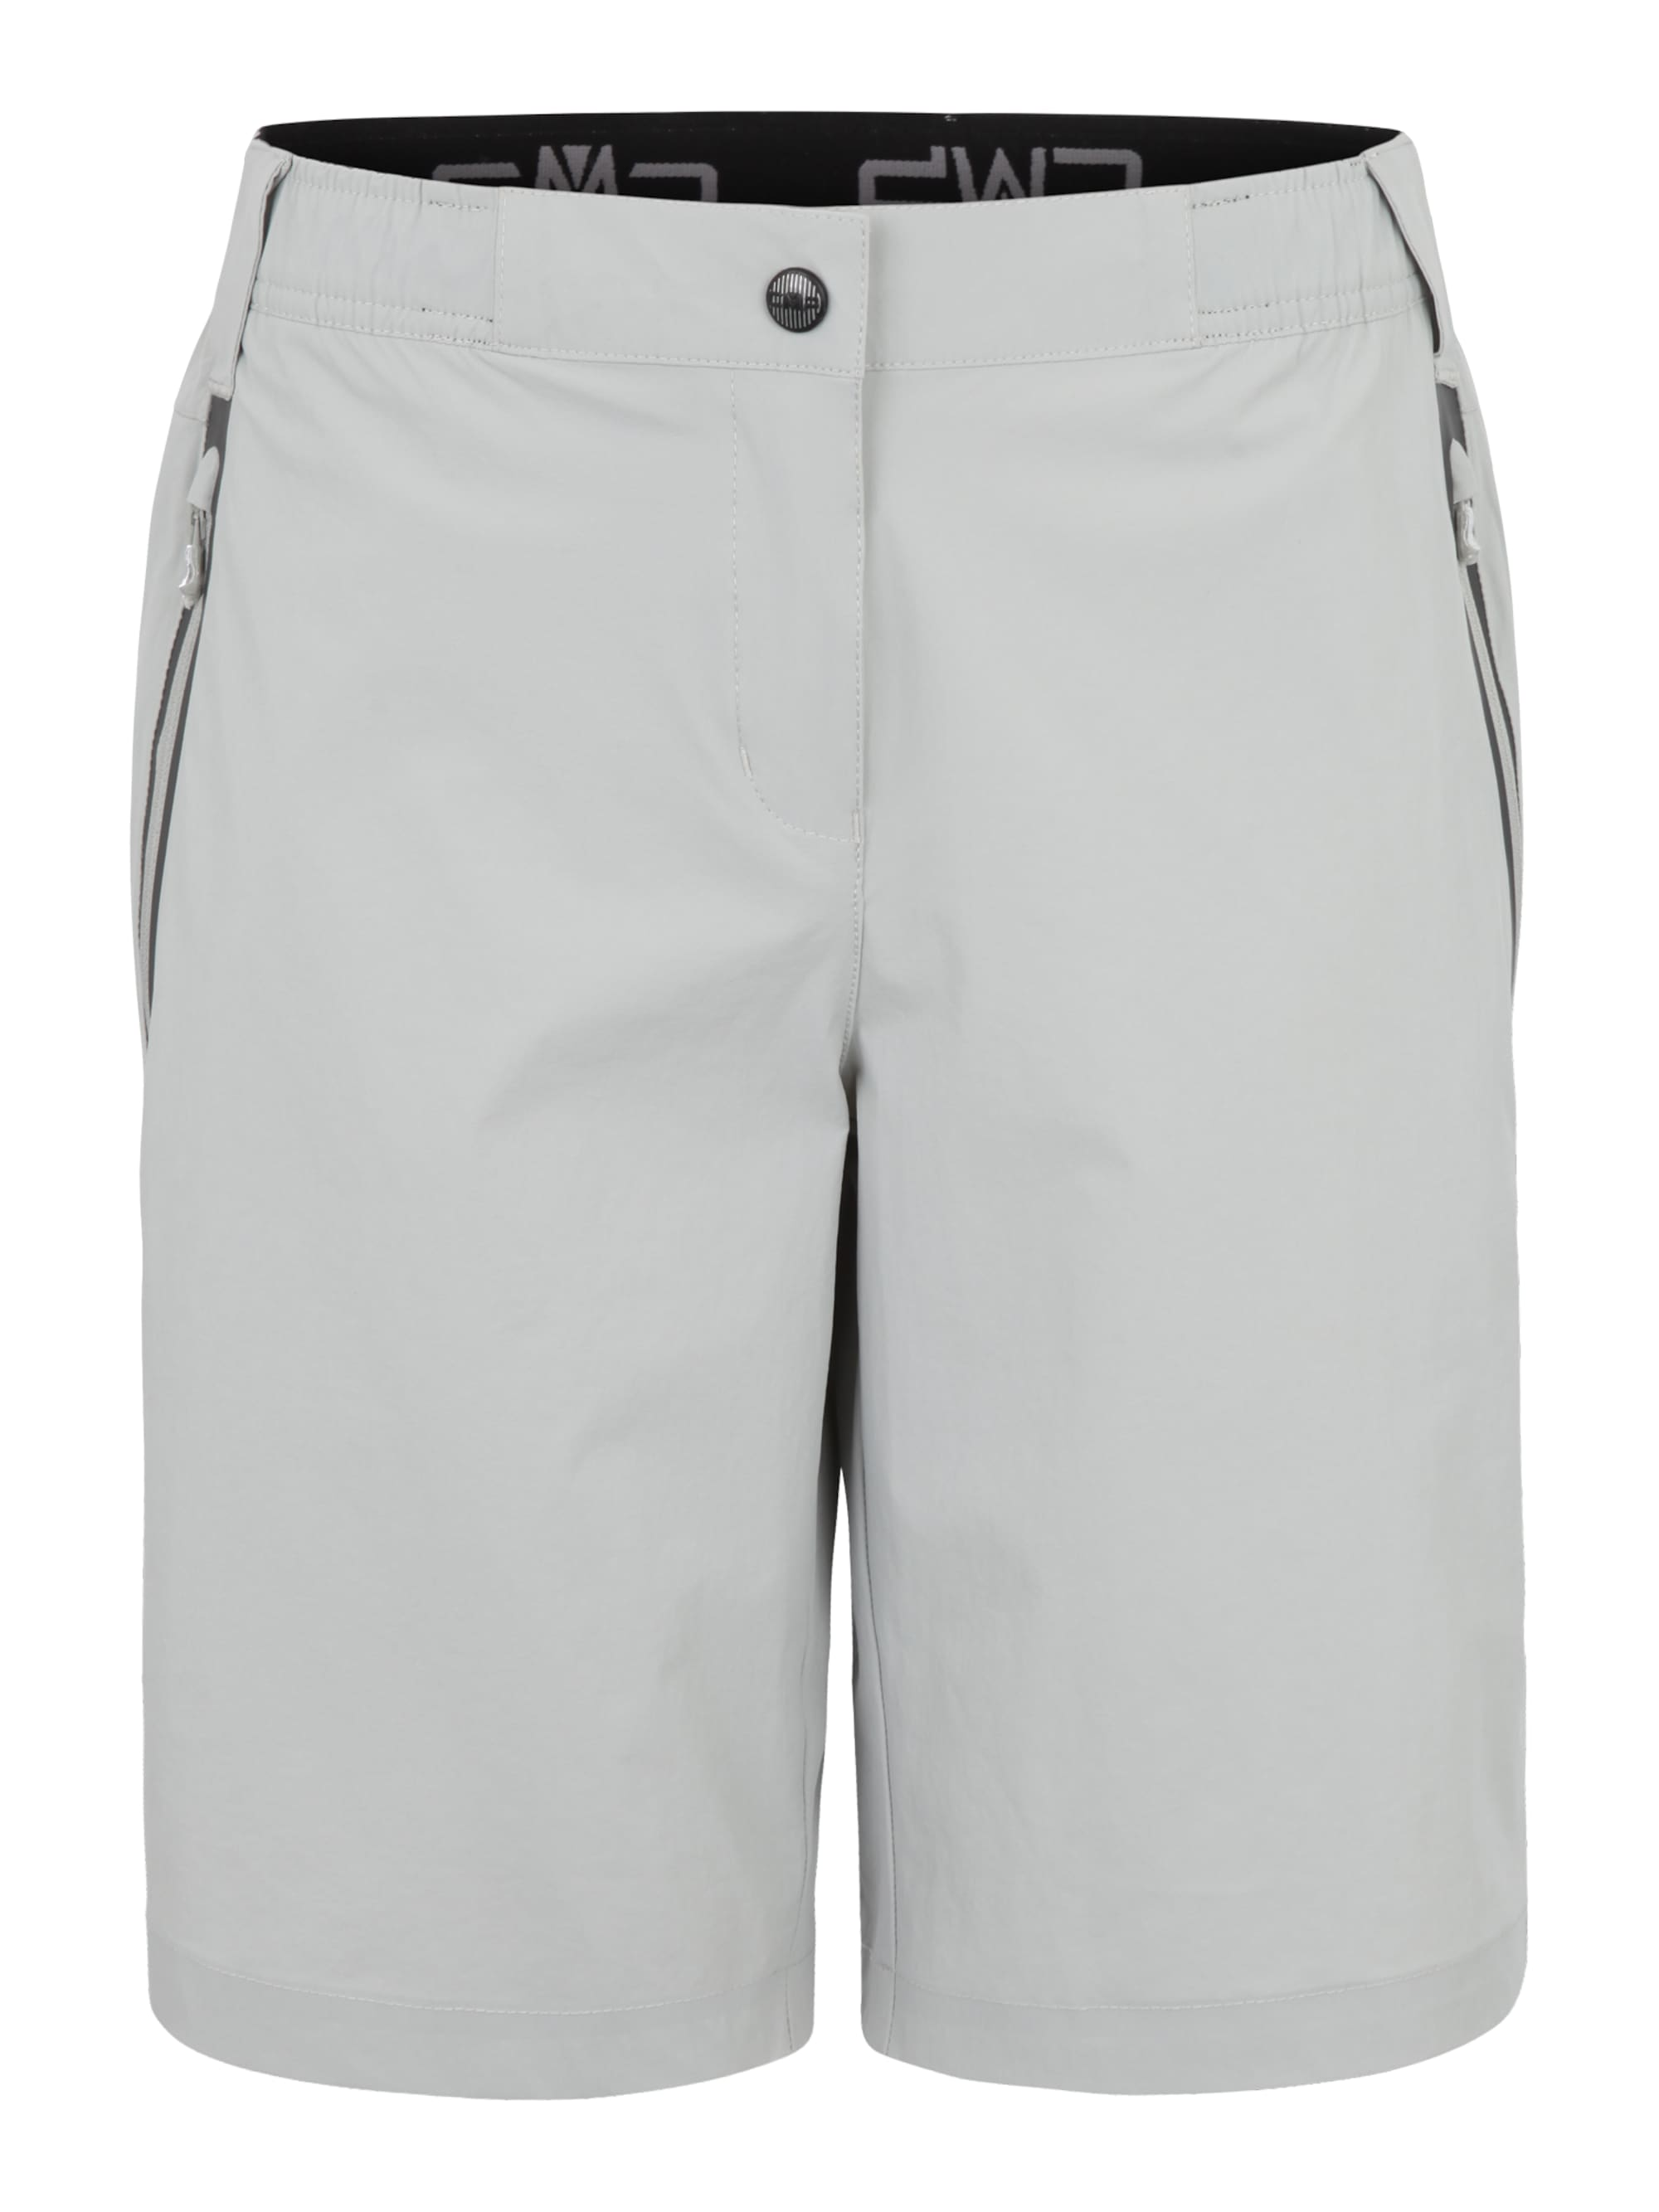 Outdoor Bermuda Shorts